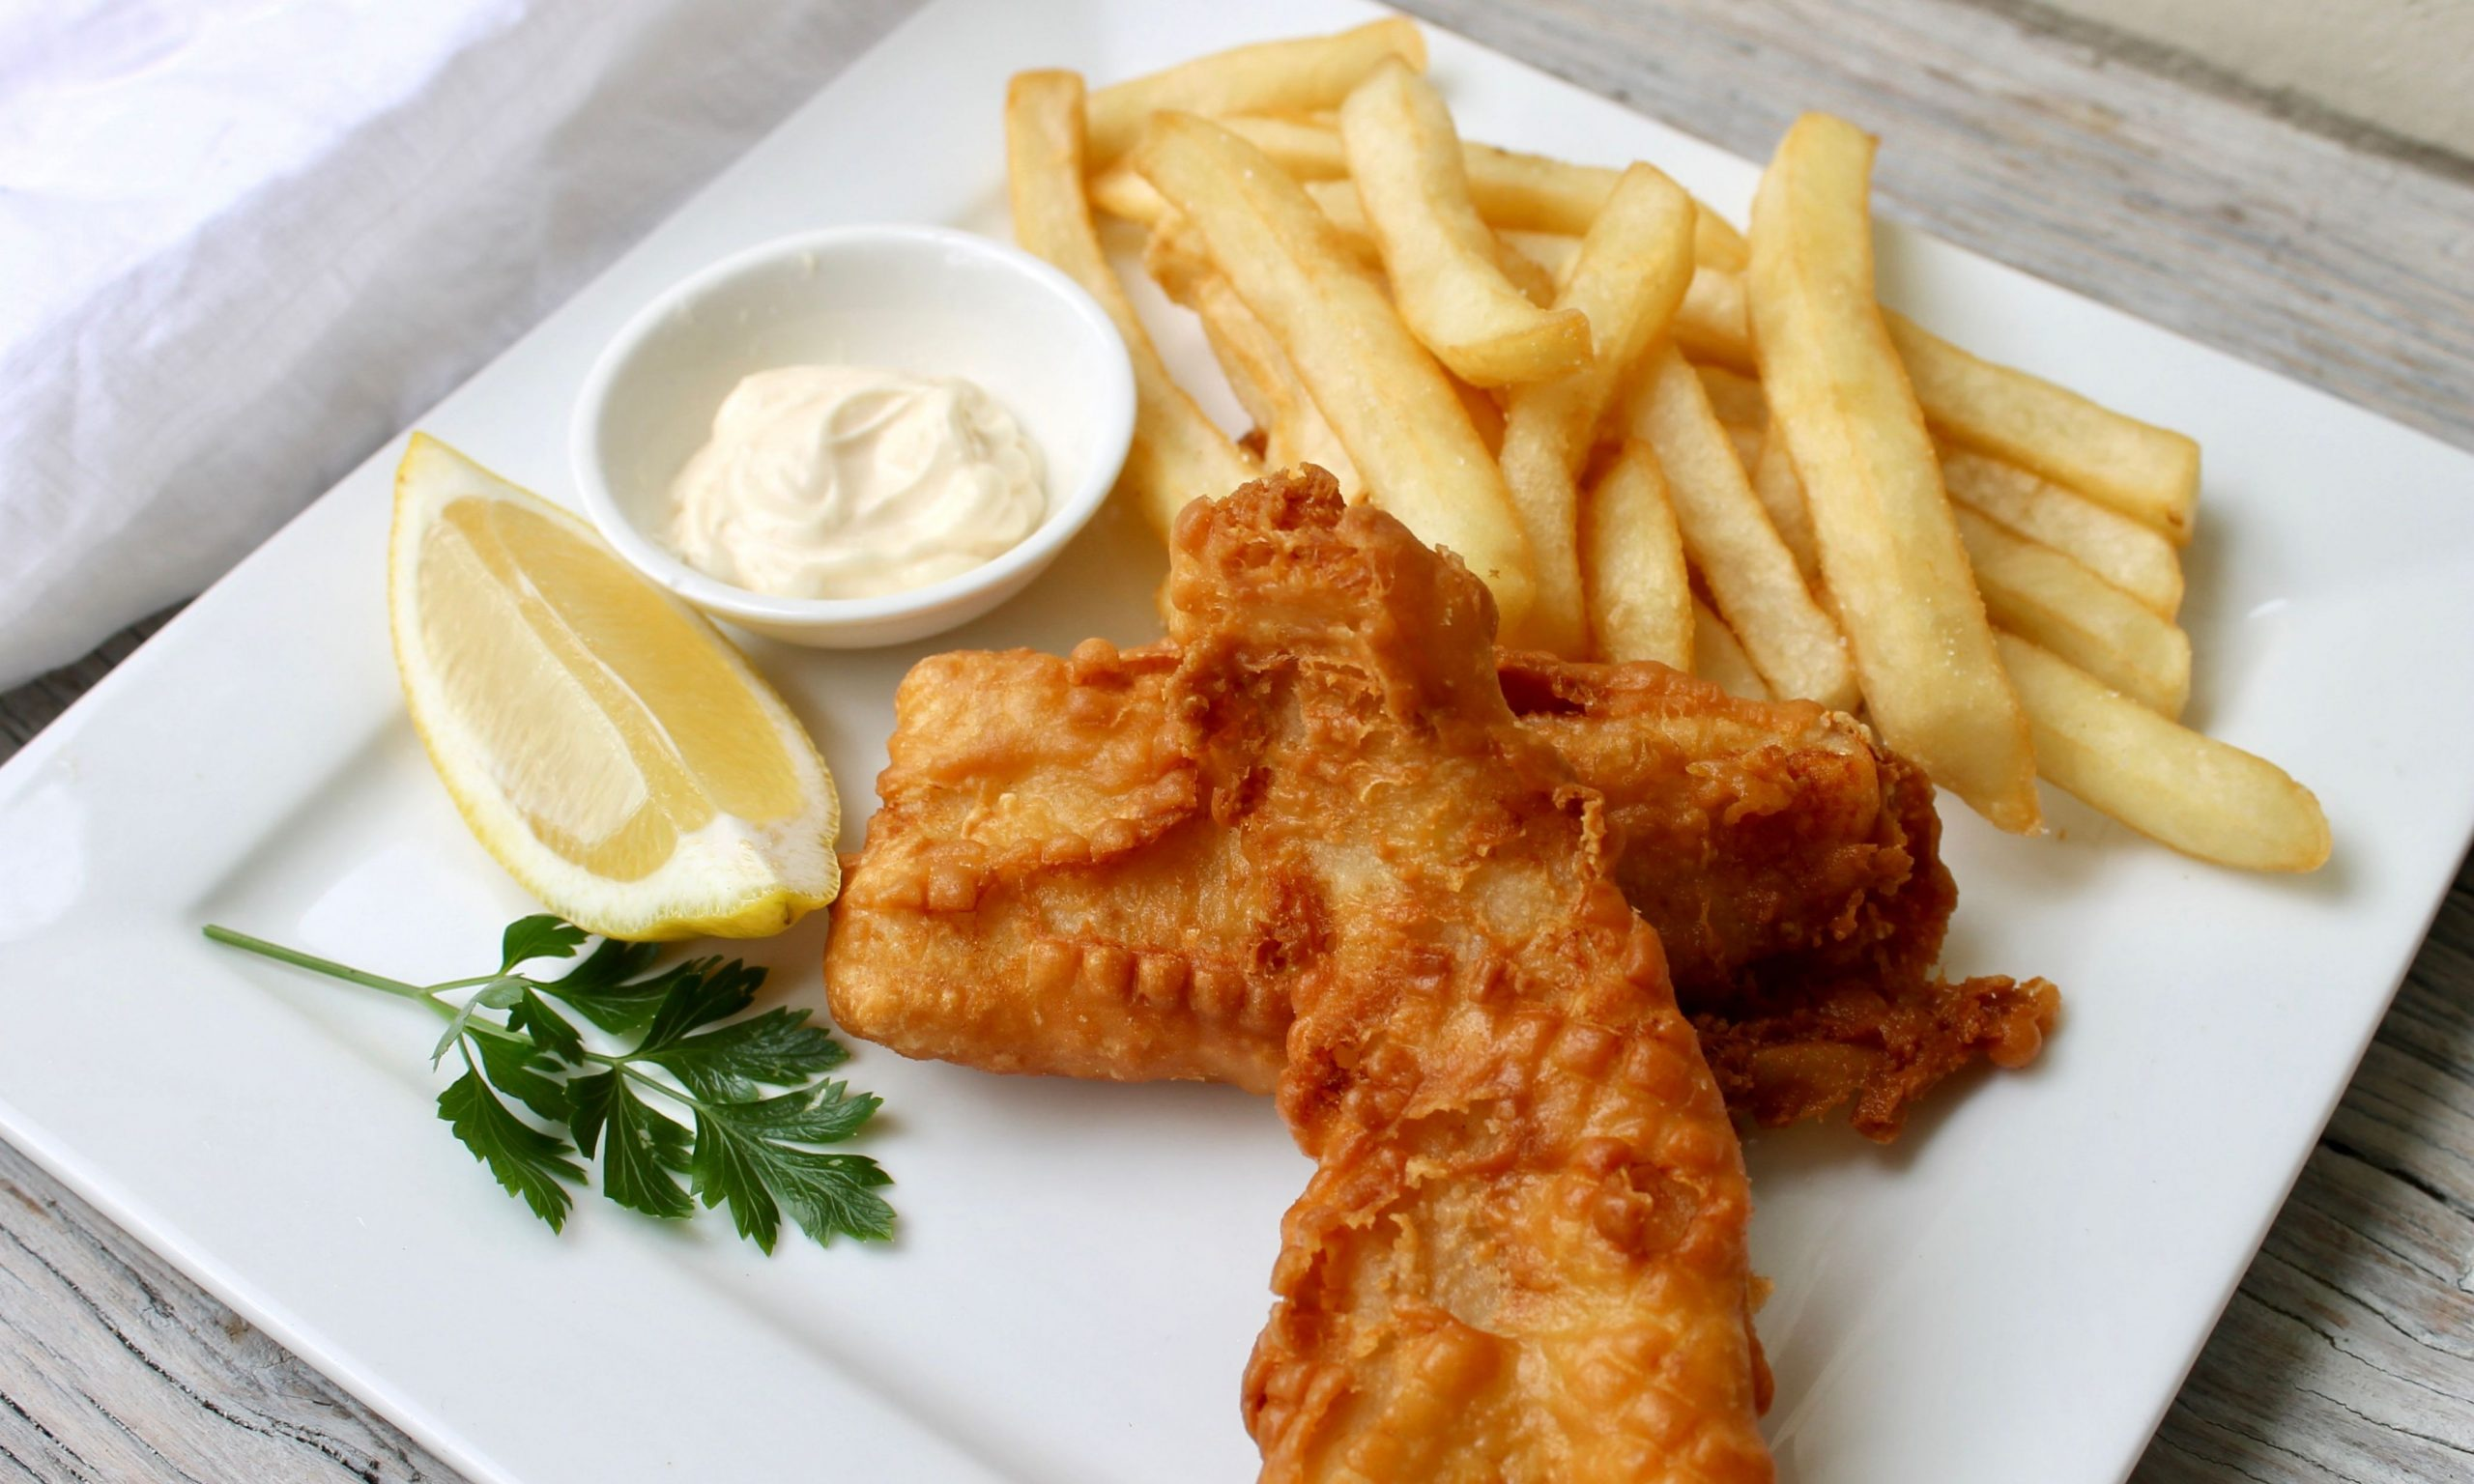 Batter recipe for fish and chips